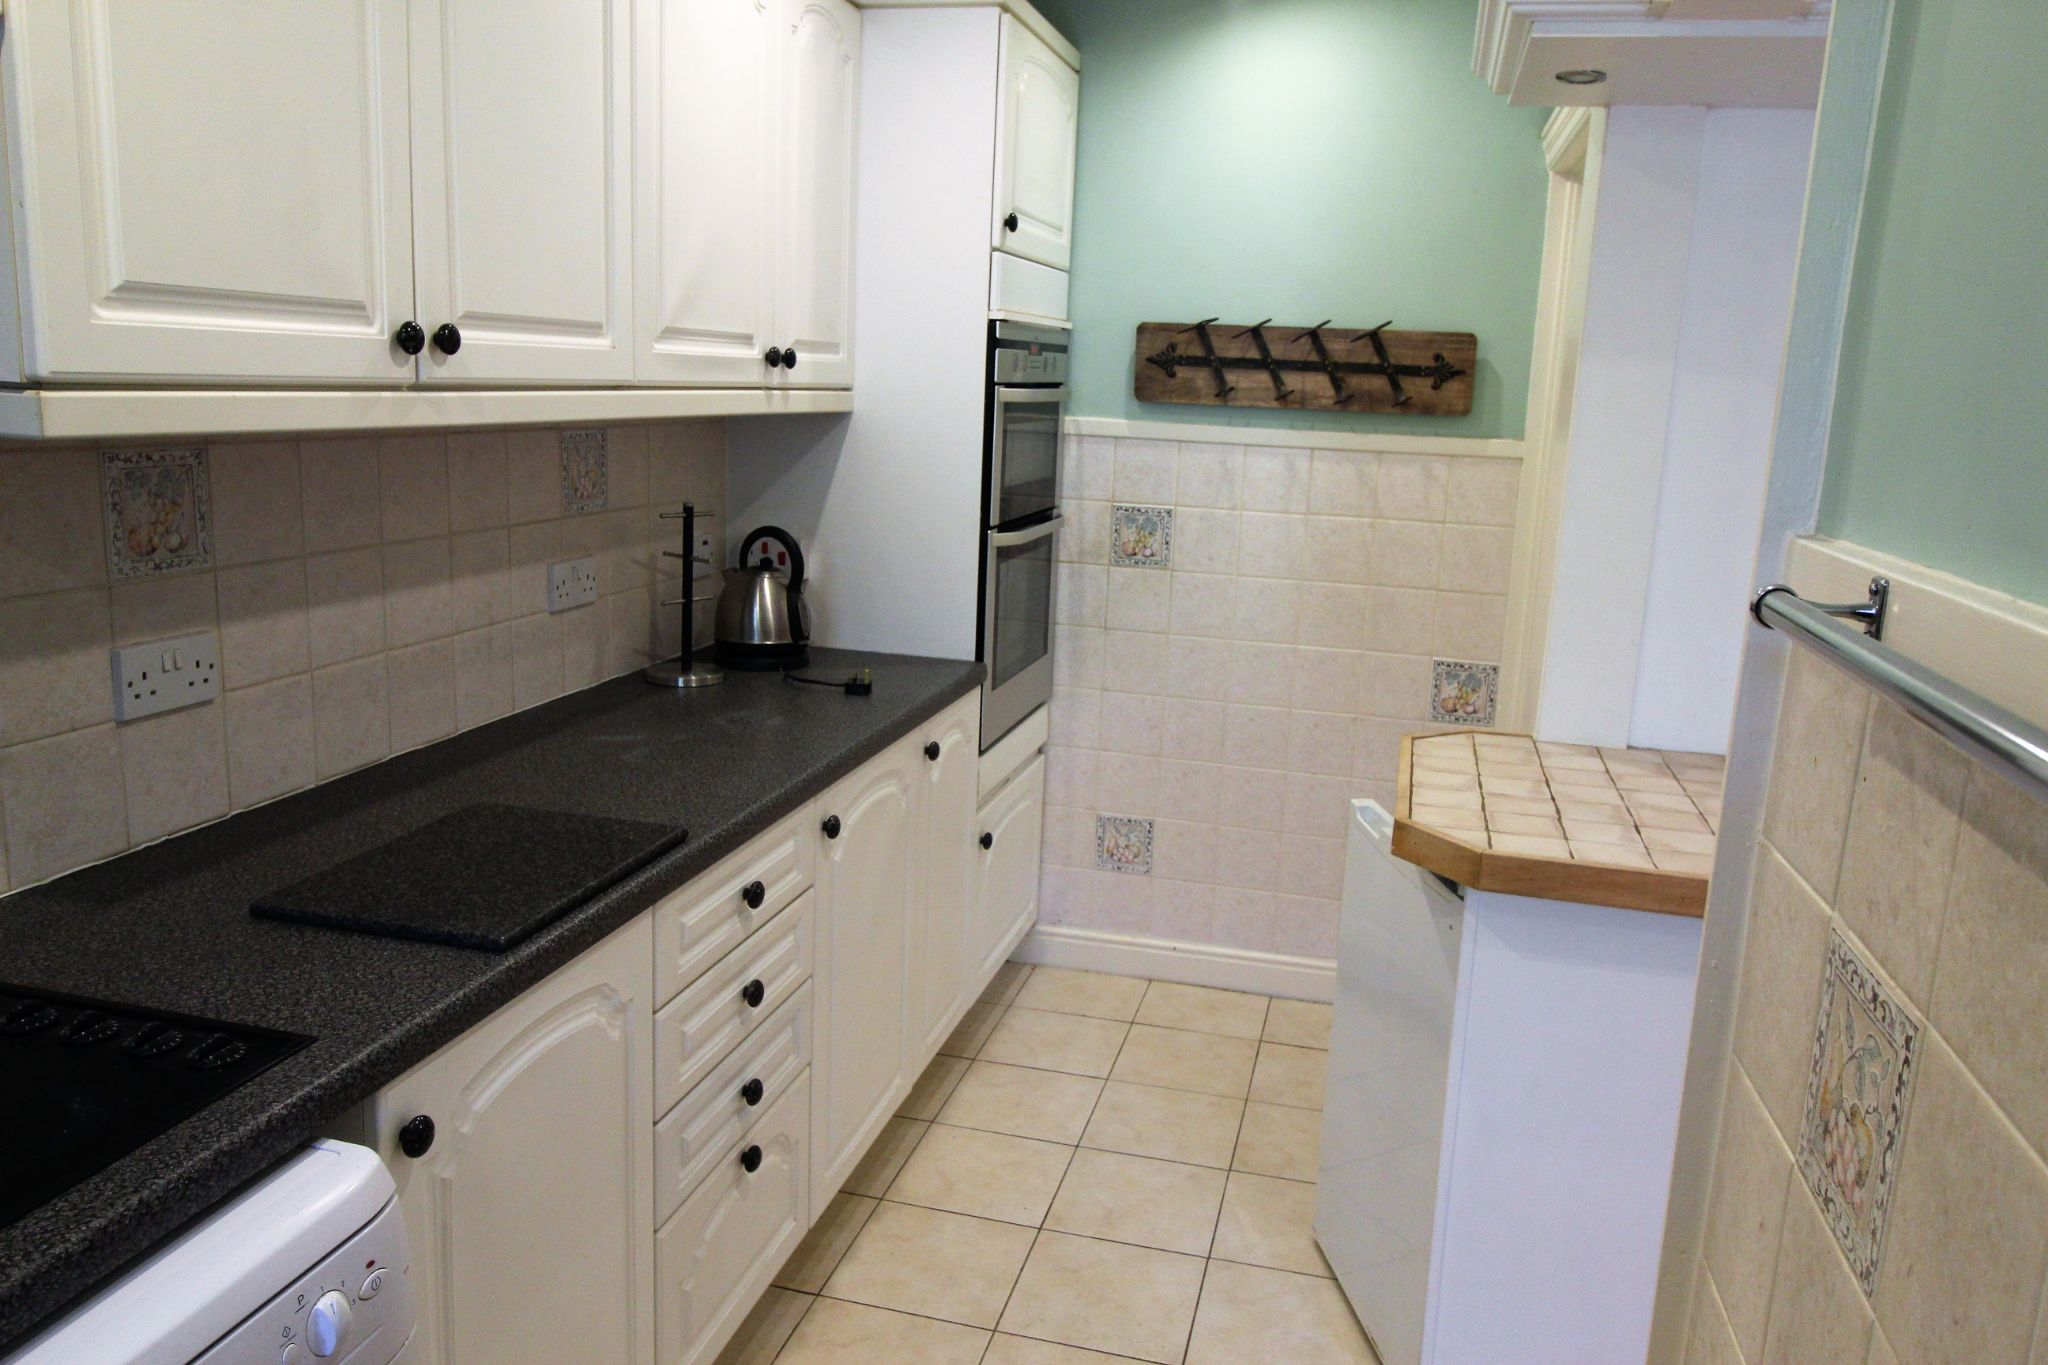 3 bedroom mid terraced house Let Agreed in Brighouse - Kitchen